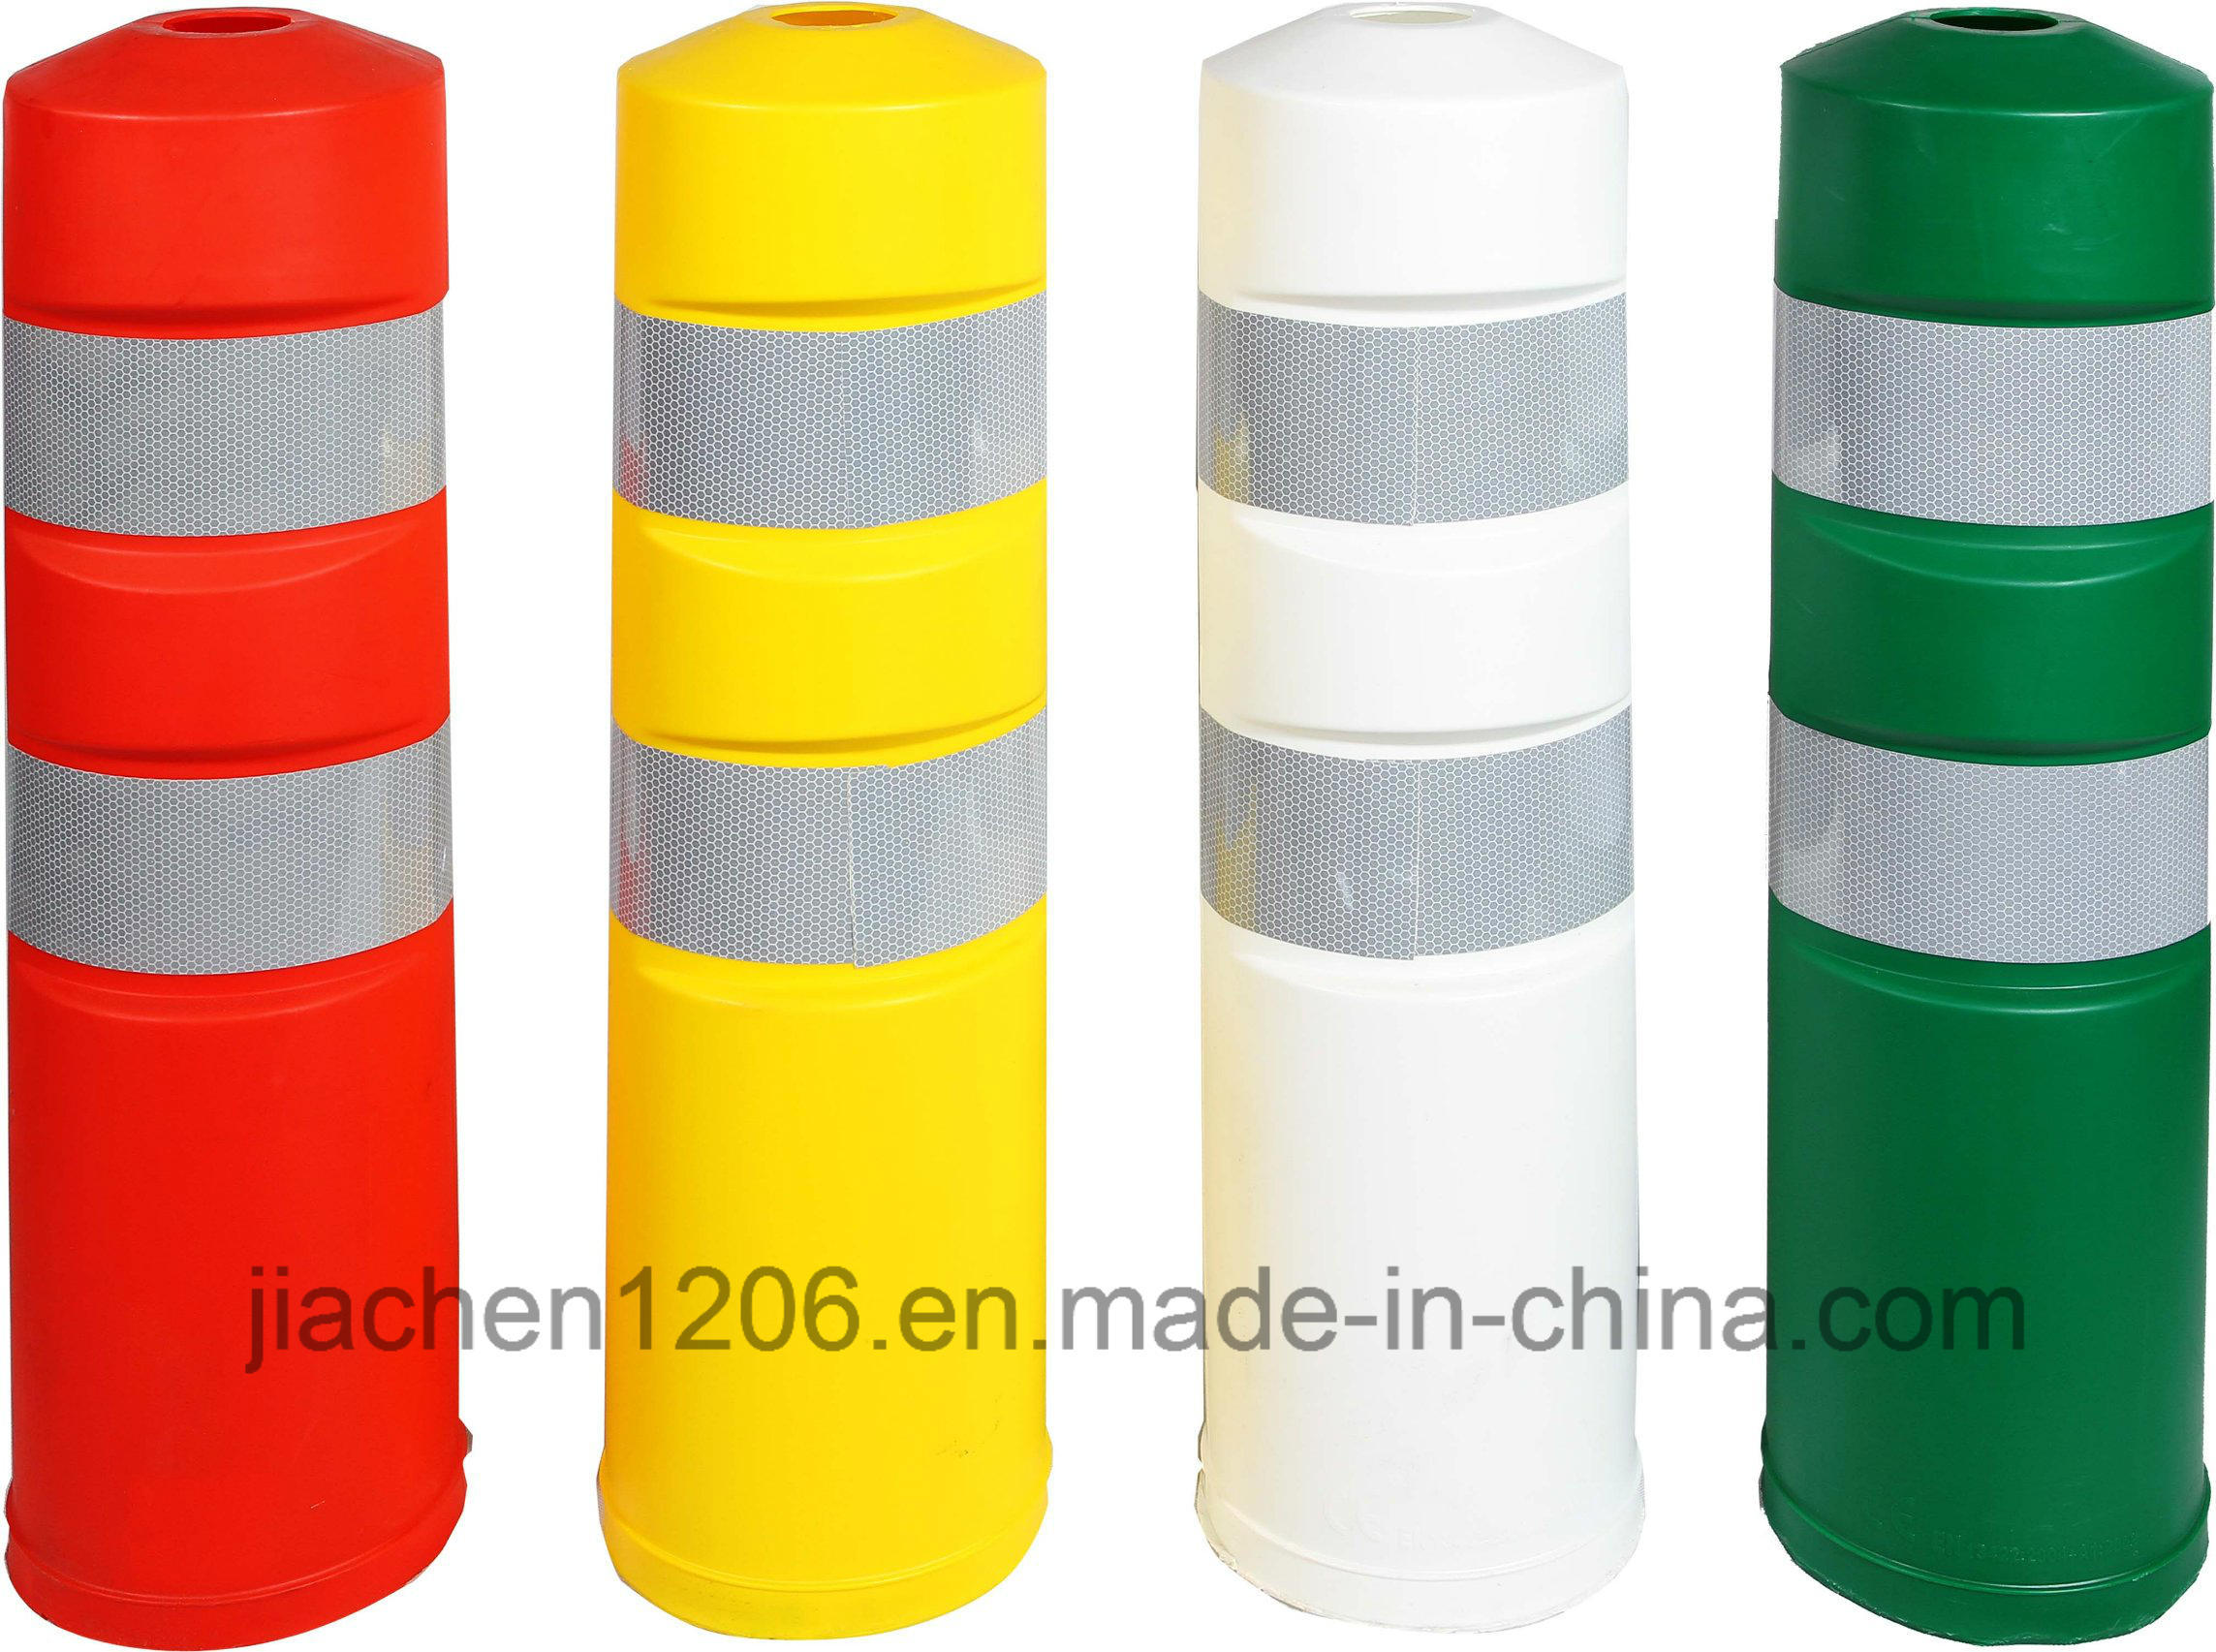 Colorful Metal Mounting Plate EVA &⪞ Apdot; 8 in⪞ H Warning Bollard